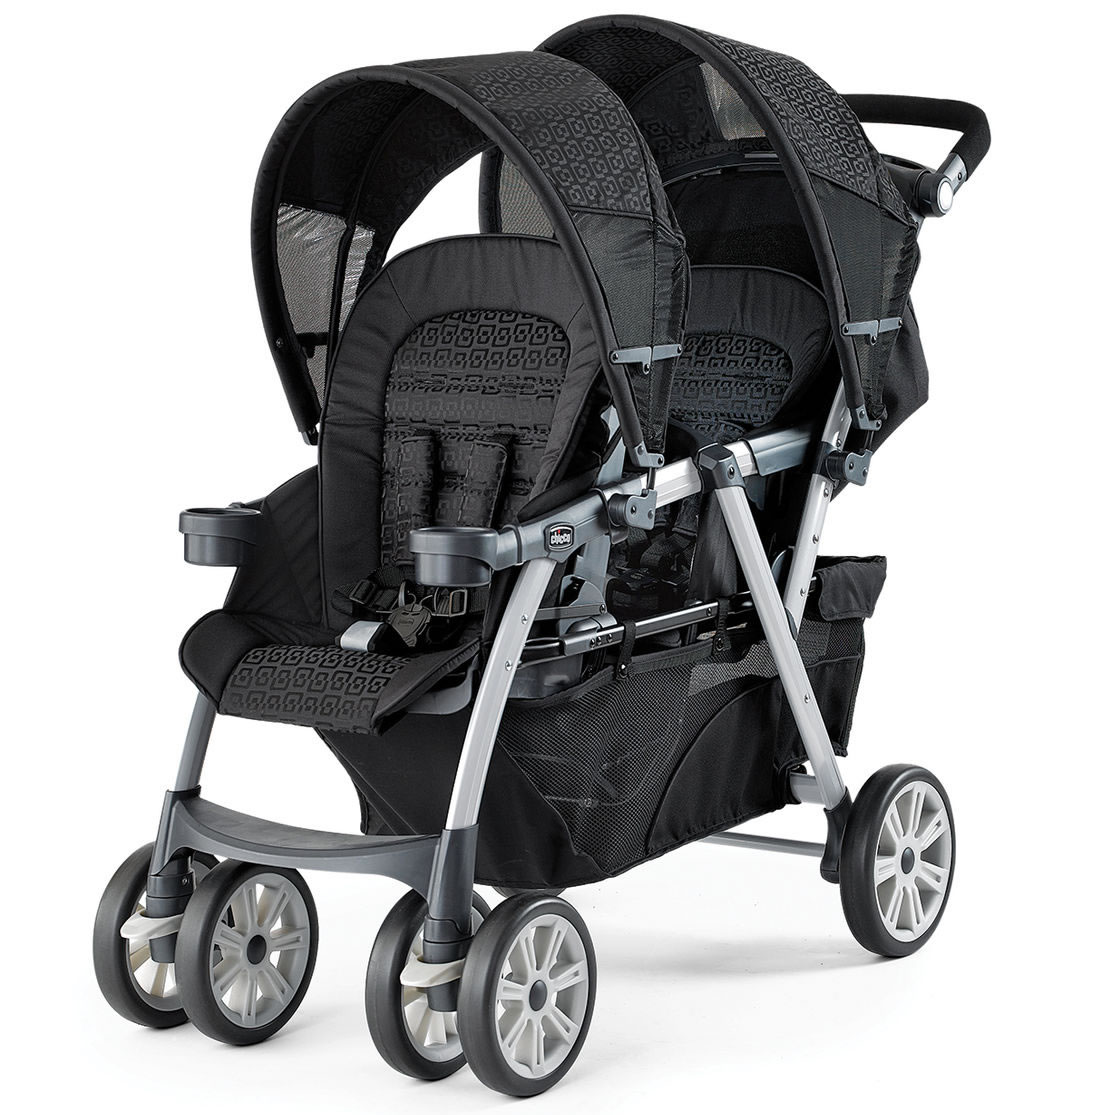 Voguish Ombra Black From Co Cortina Cx Travel System Lima Co Cortina Cx Travel System Stroller Iron Co Cortina Toger Stroller Ombra Black Co Cortina Toger Stroller baby Chicco Cortina Cx Travel System